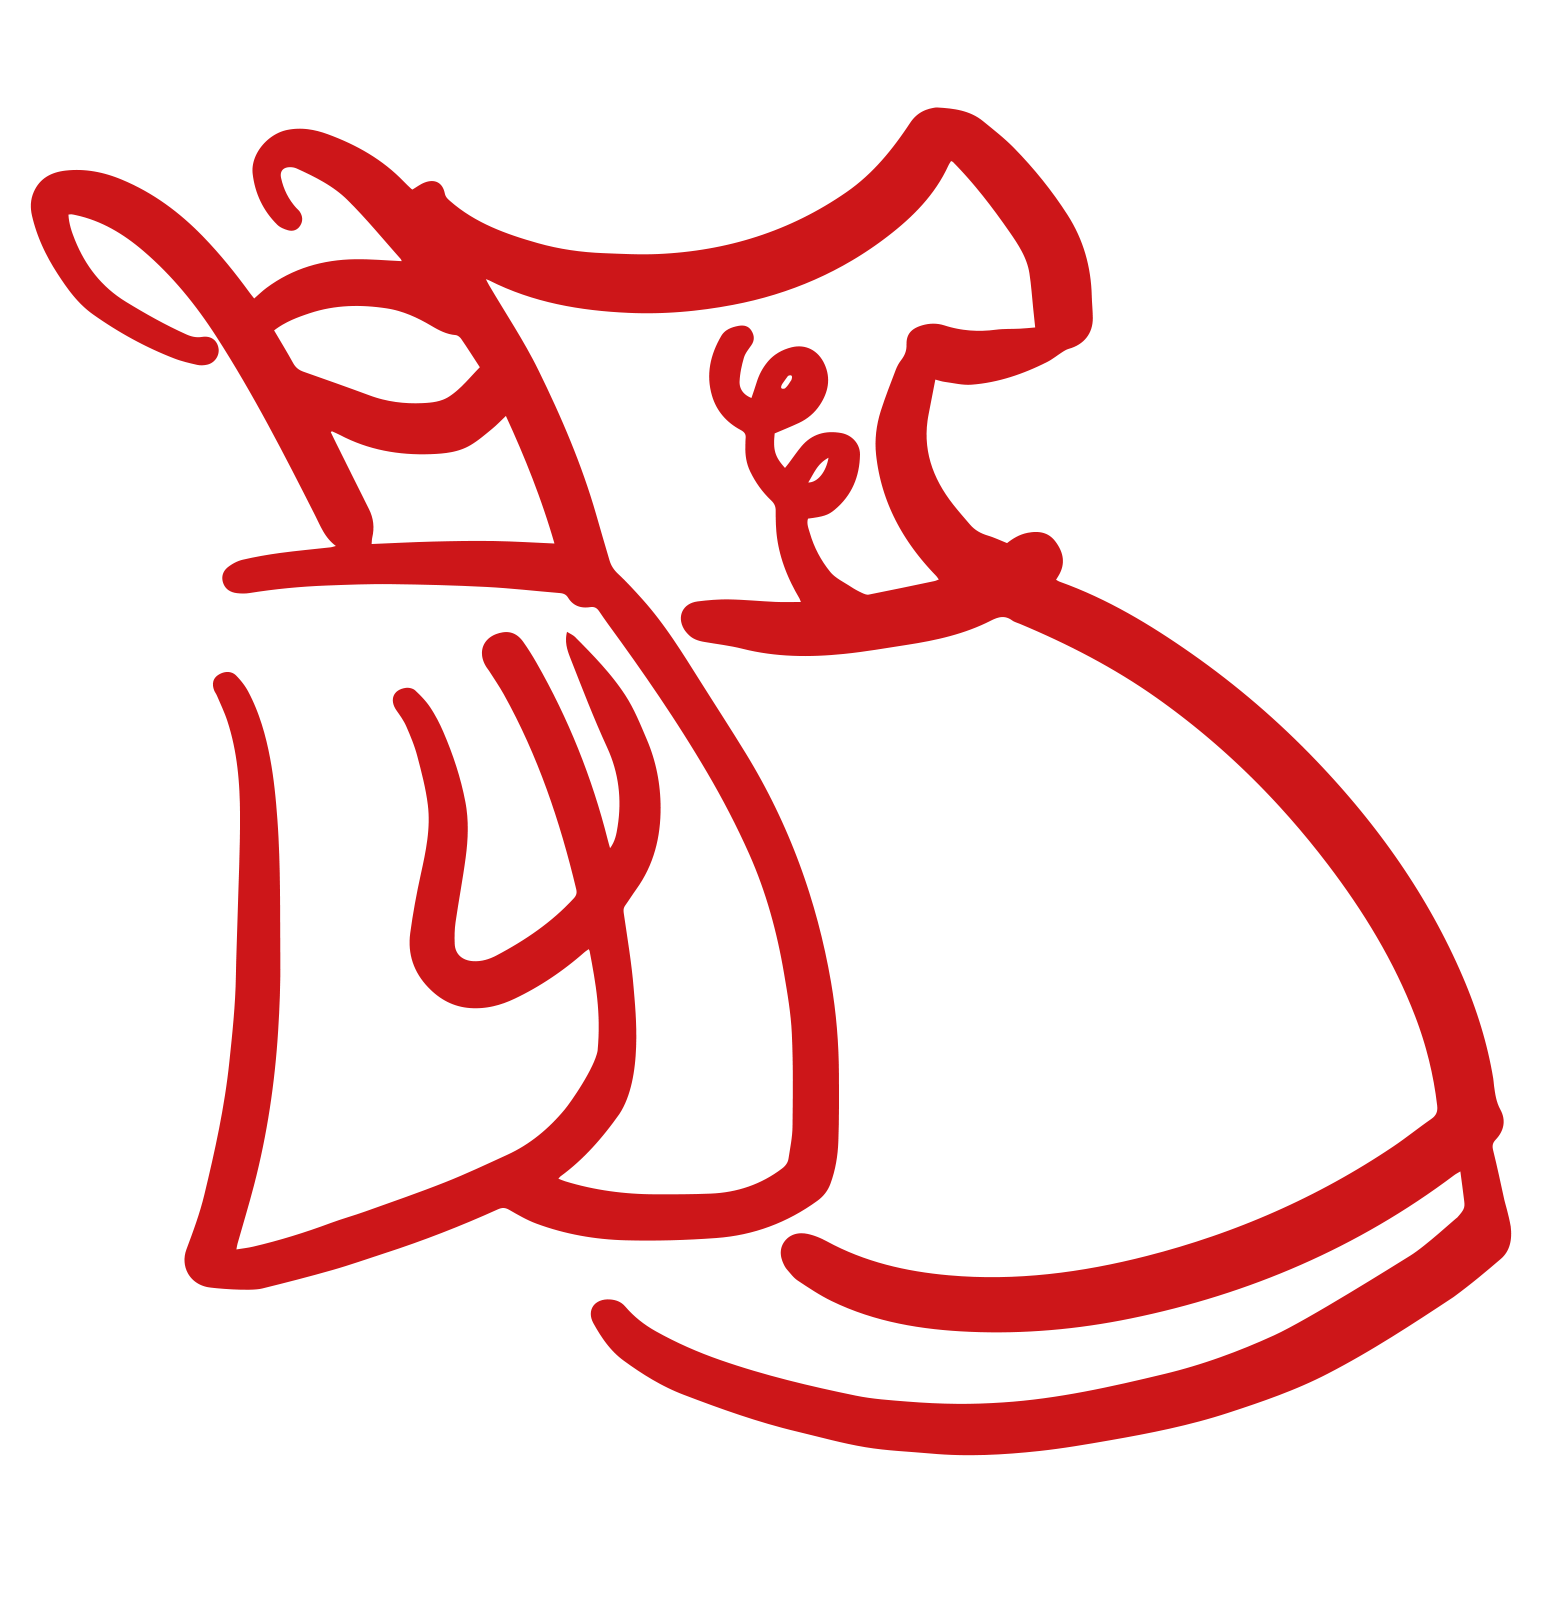 Stretch Loden-Gilet, Weste in dunkel grau